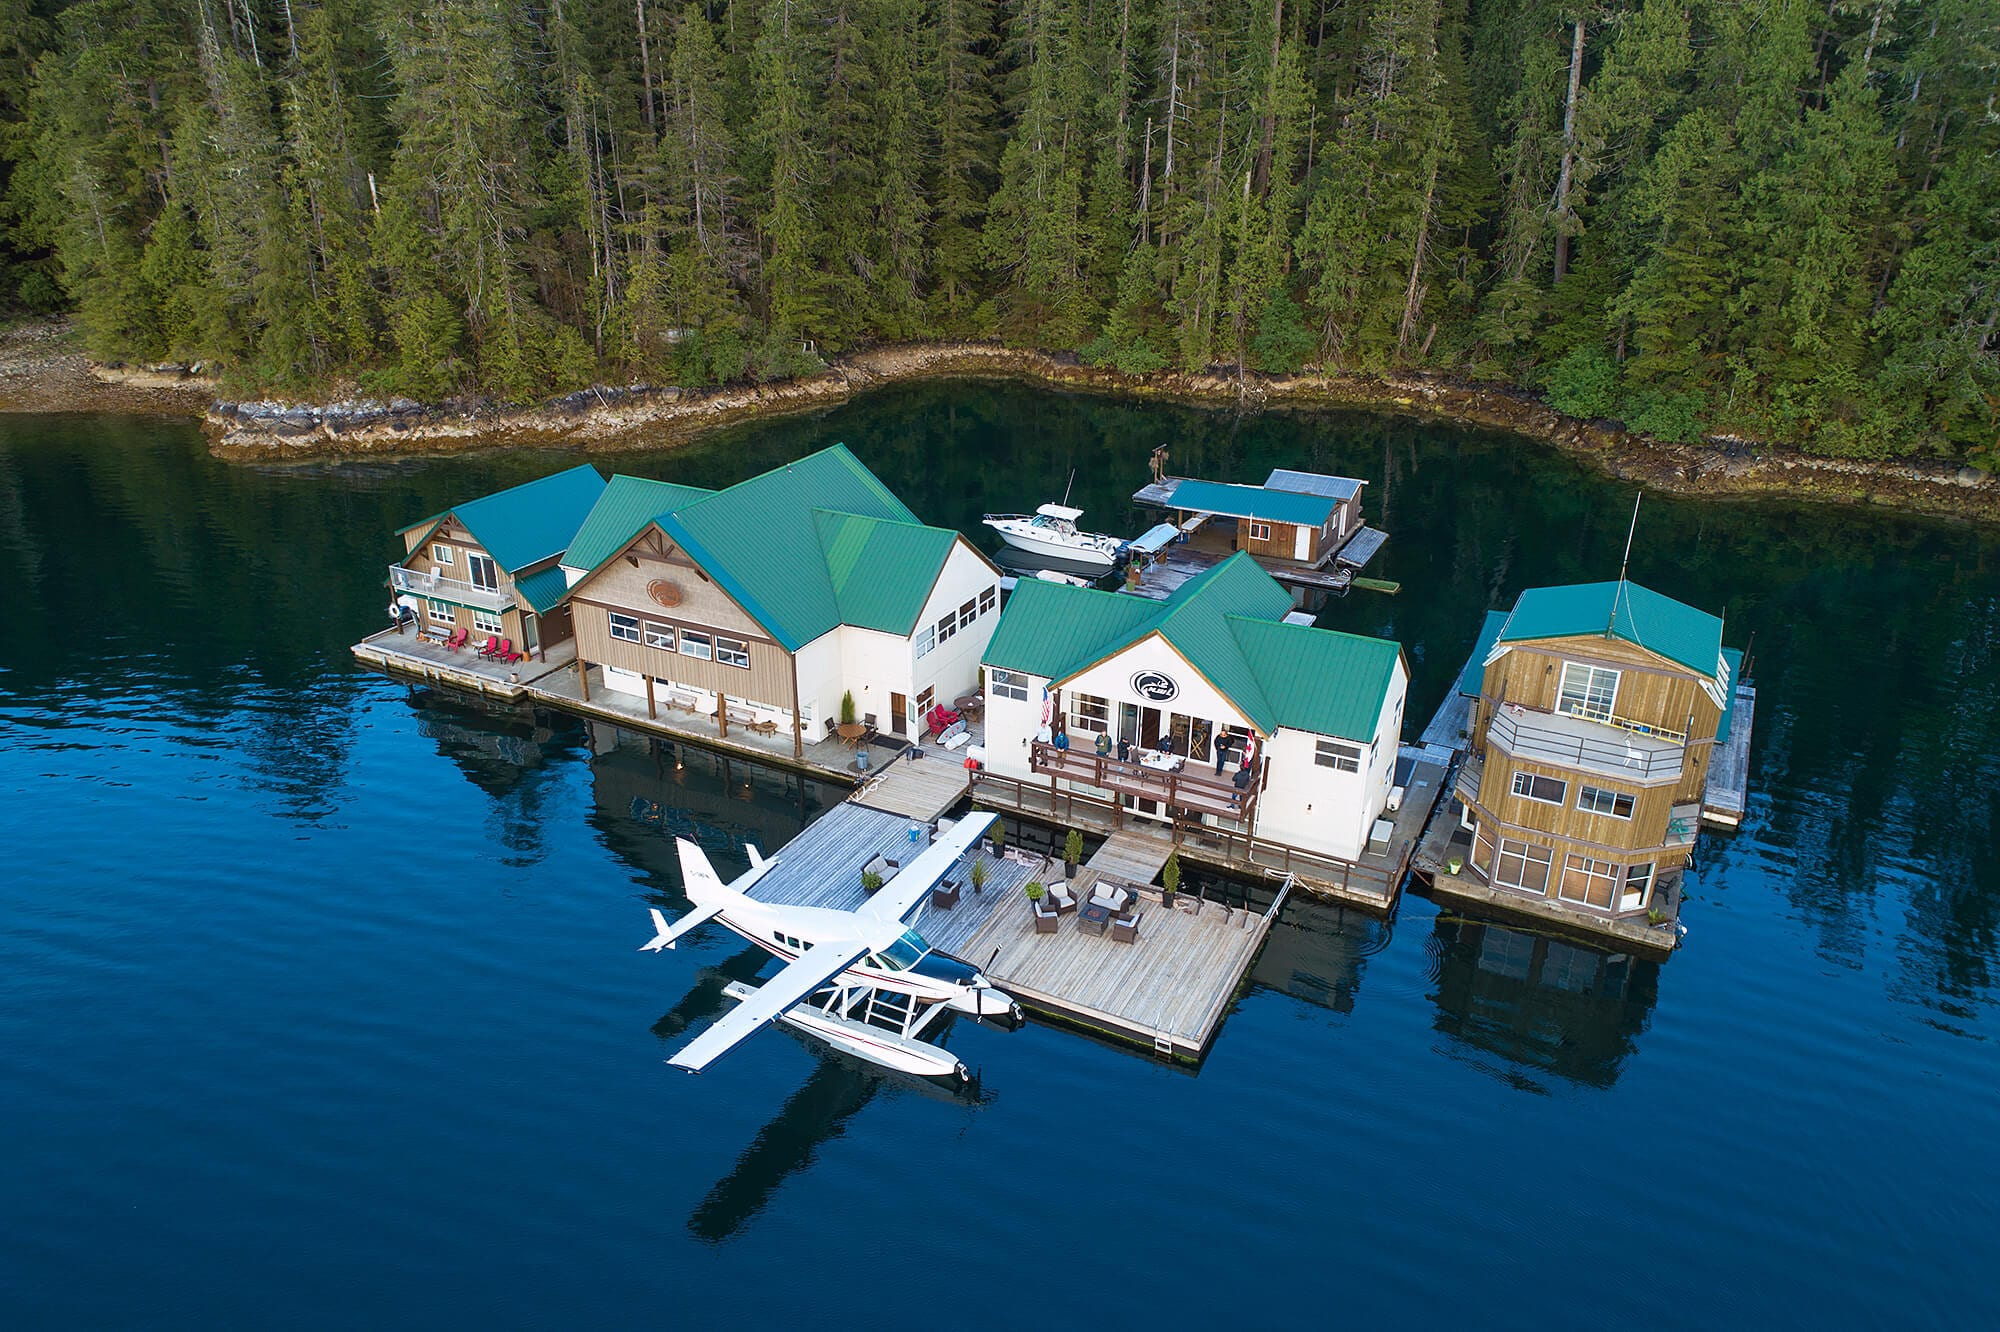 Aerial view of Nootka Wilderness Lodge with float plane parked at dock.